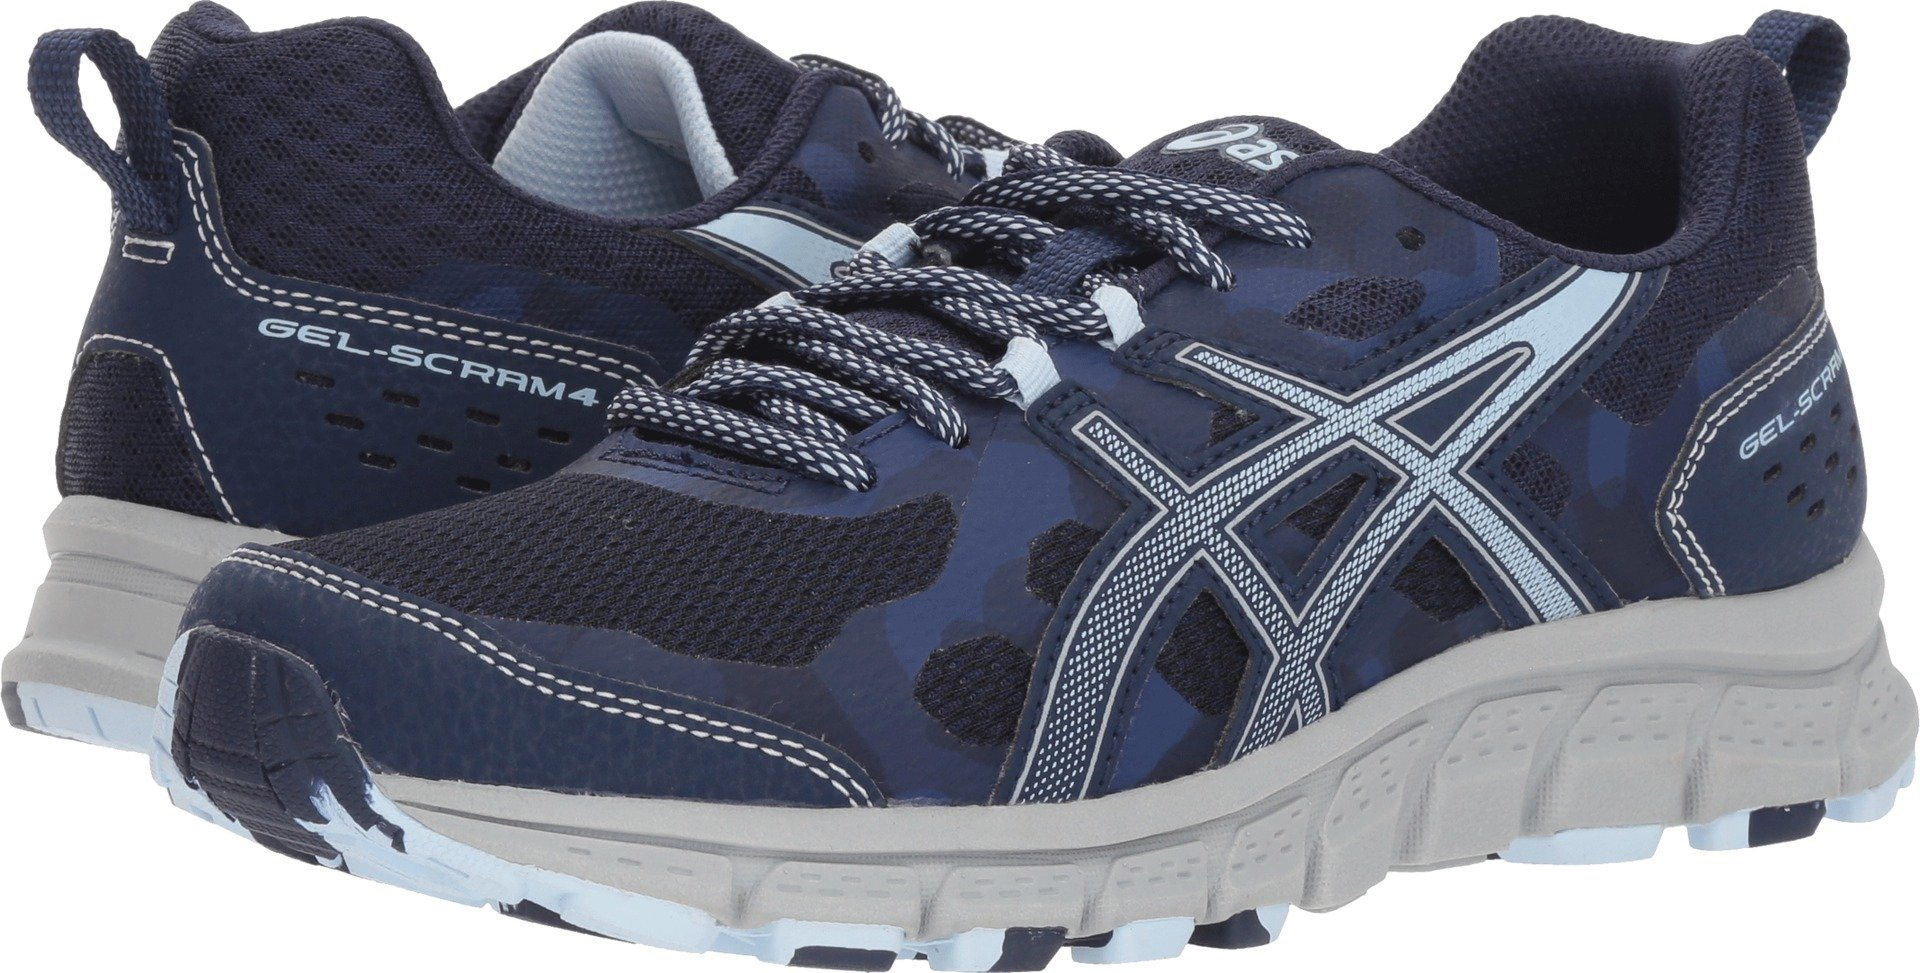 ASICS 1012A039 Women's Gel-Scram 4 Running Shoe, Peacoat/Soft Sky - 5.5 B(M) US by ASICS (Image #1)